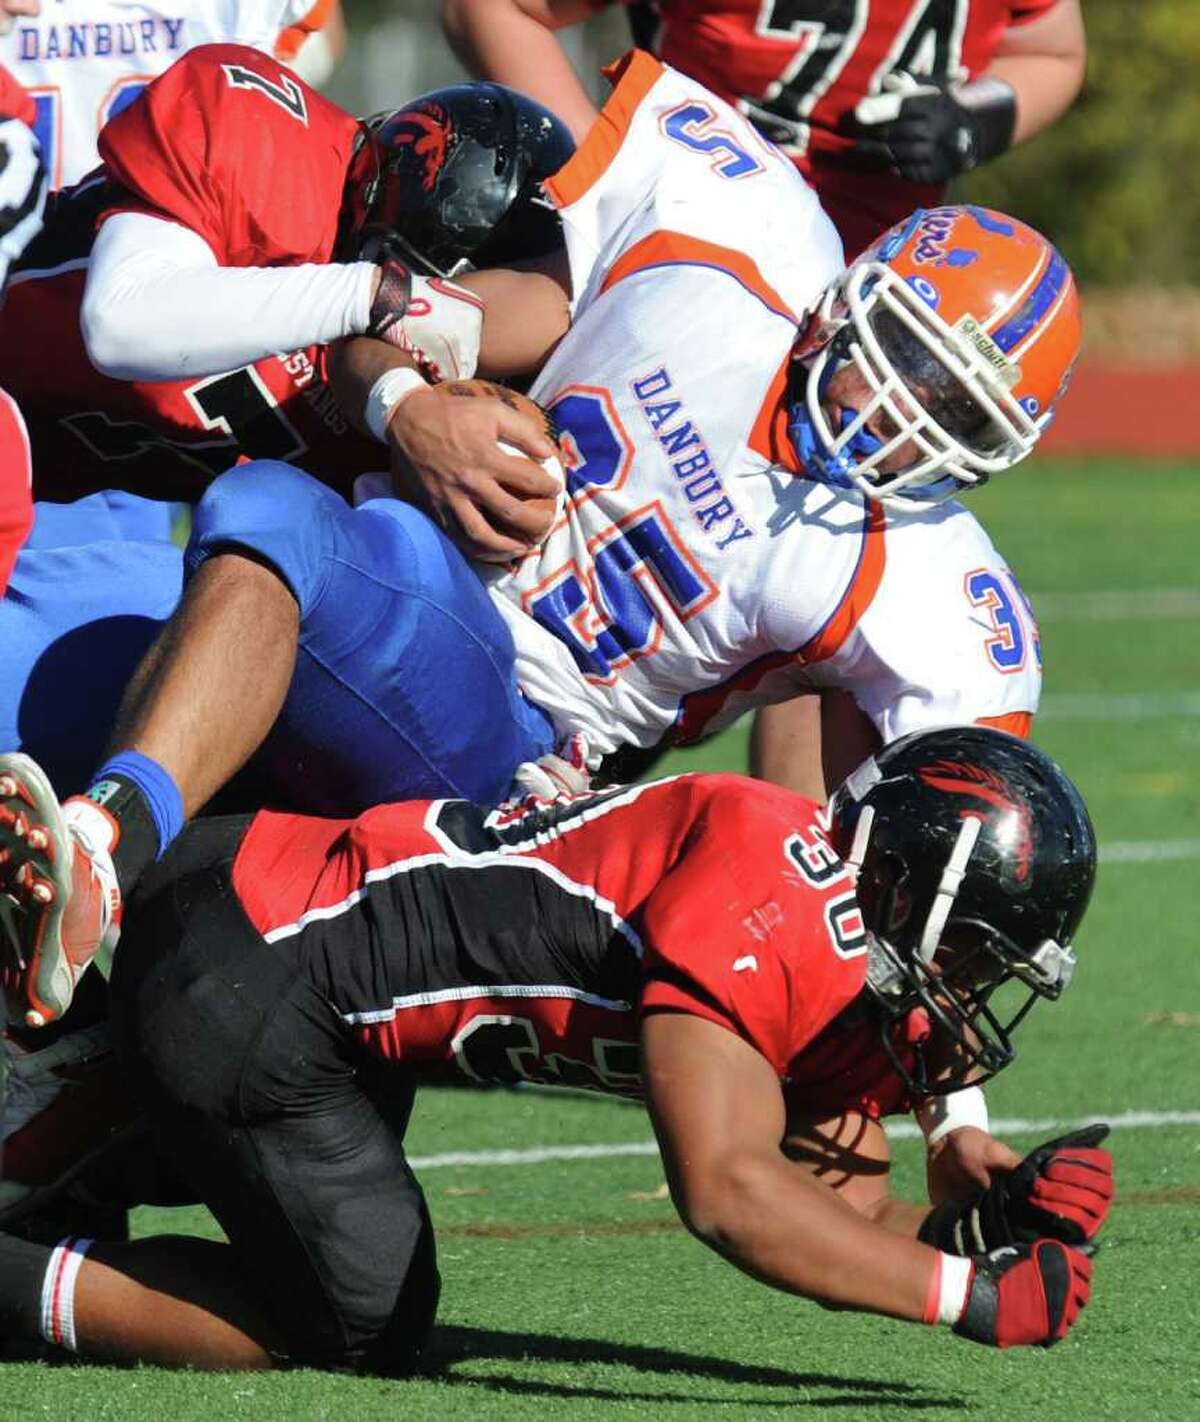 Danbury's #35 Austin Calitro, center, gets tackled by Fairfield Warde's #7 Charlie Edison, during football action in Fairfield, Conn. on Saturday November 13, 2010. On bottom is Warde's #30 Alex Delaney.